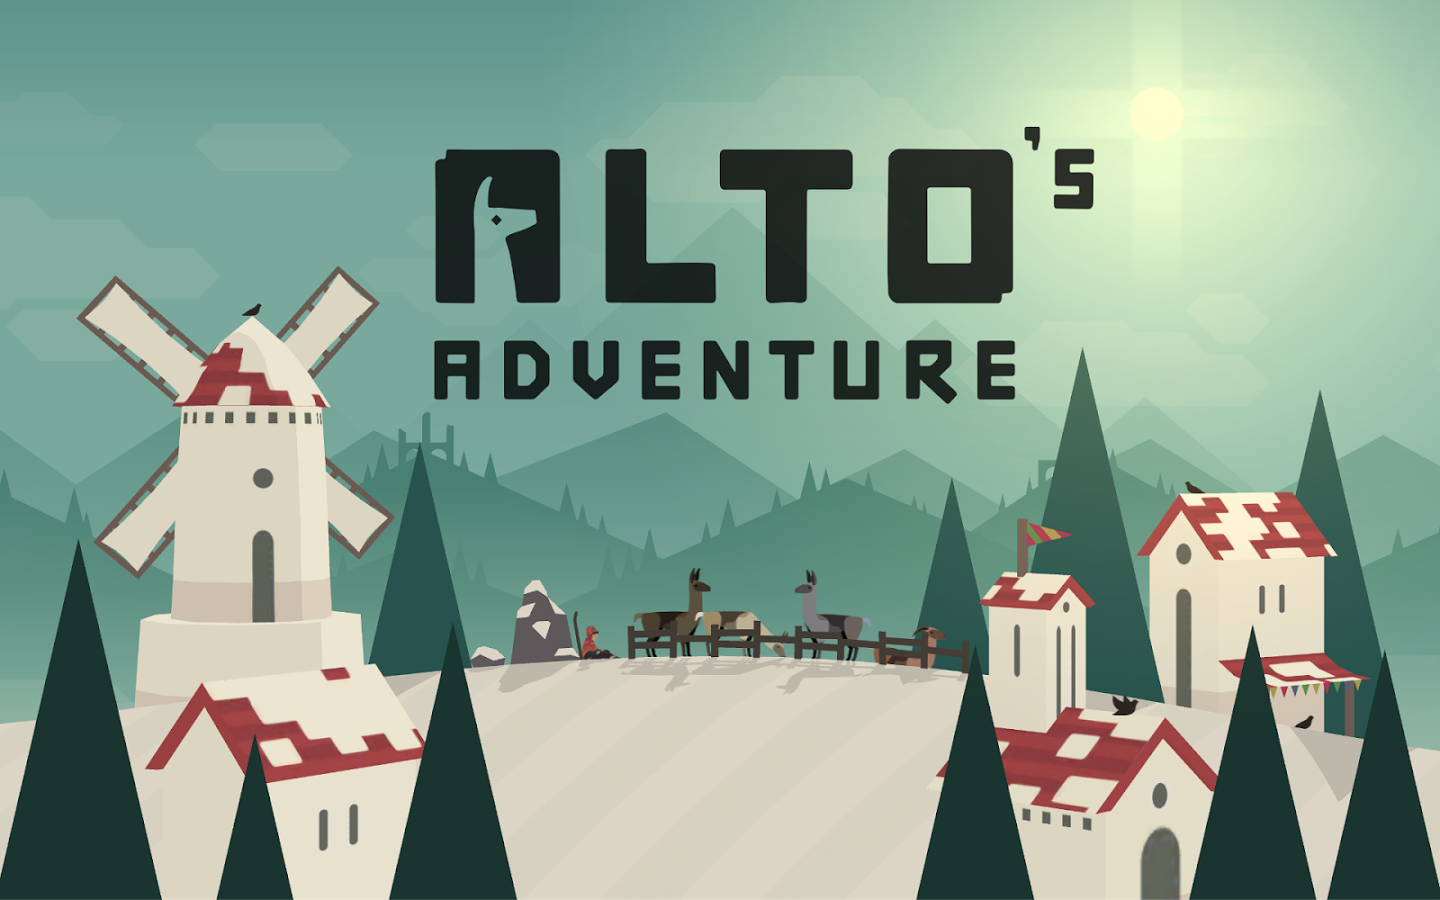 The snowboarding, llama-chasing Alto's Adventure is currently on sale on iOS